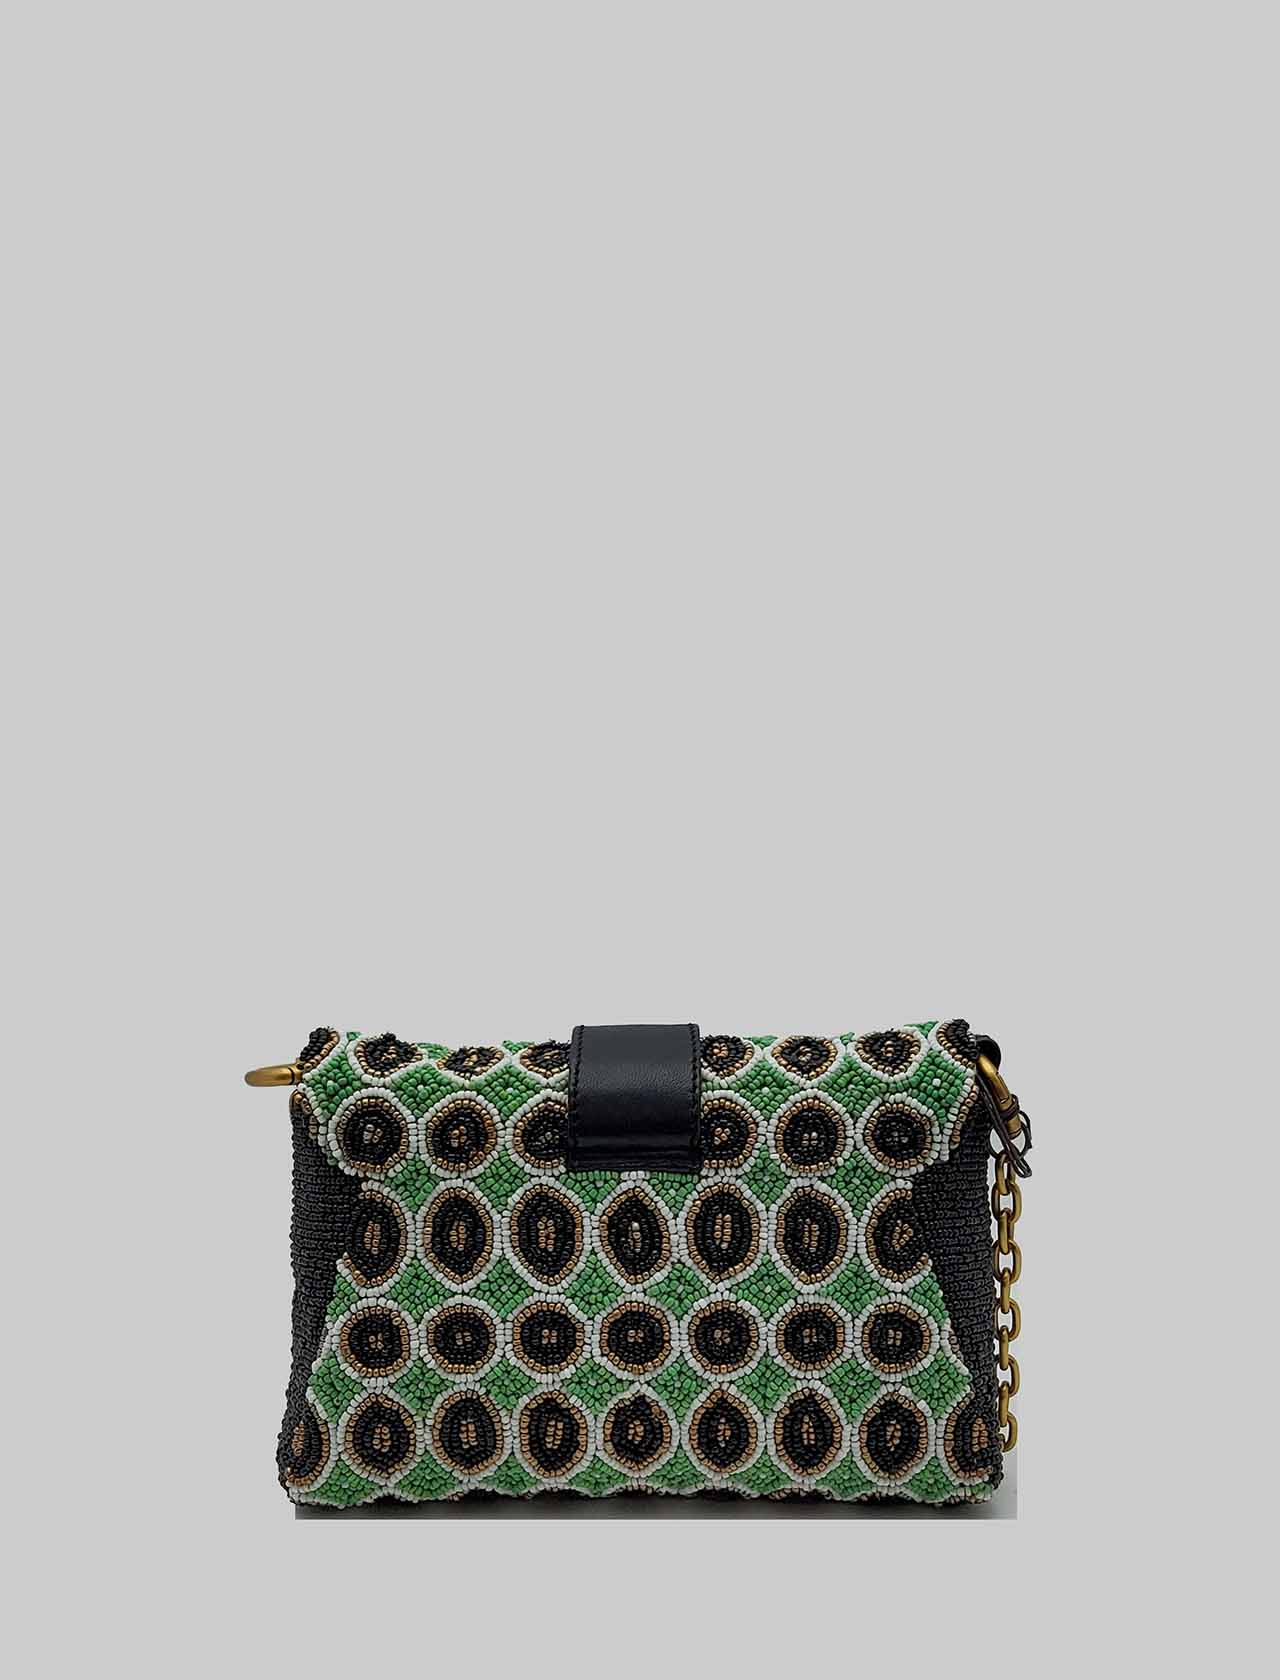 Women's Small Shoulder Bag Tribal Dance in Green and Gold Leather and Beads with Chain and Adjustable and Removable Leather Shoulder Strap Maliparmi | Bags and backpacks | BD006490791C6020